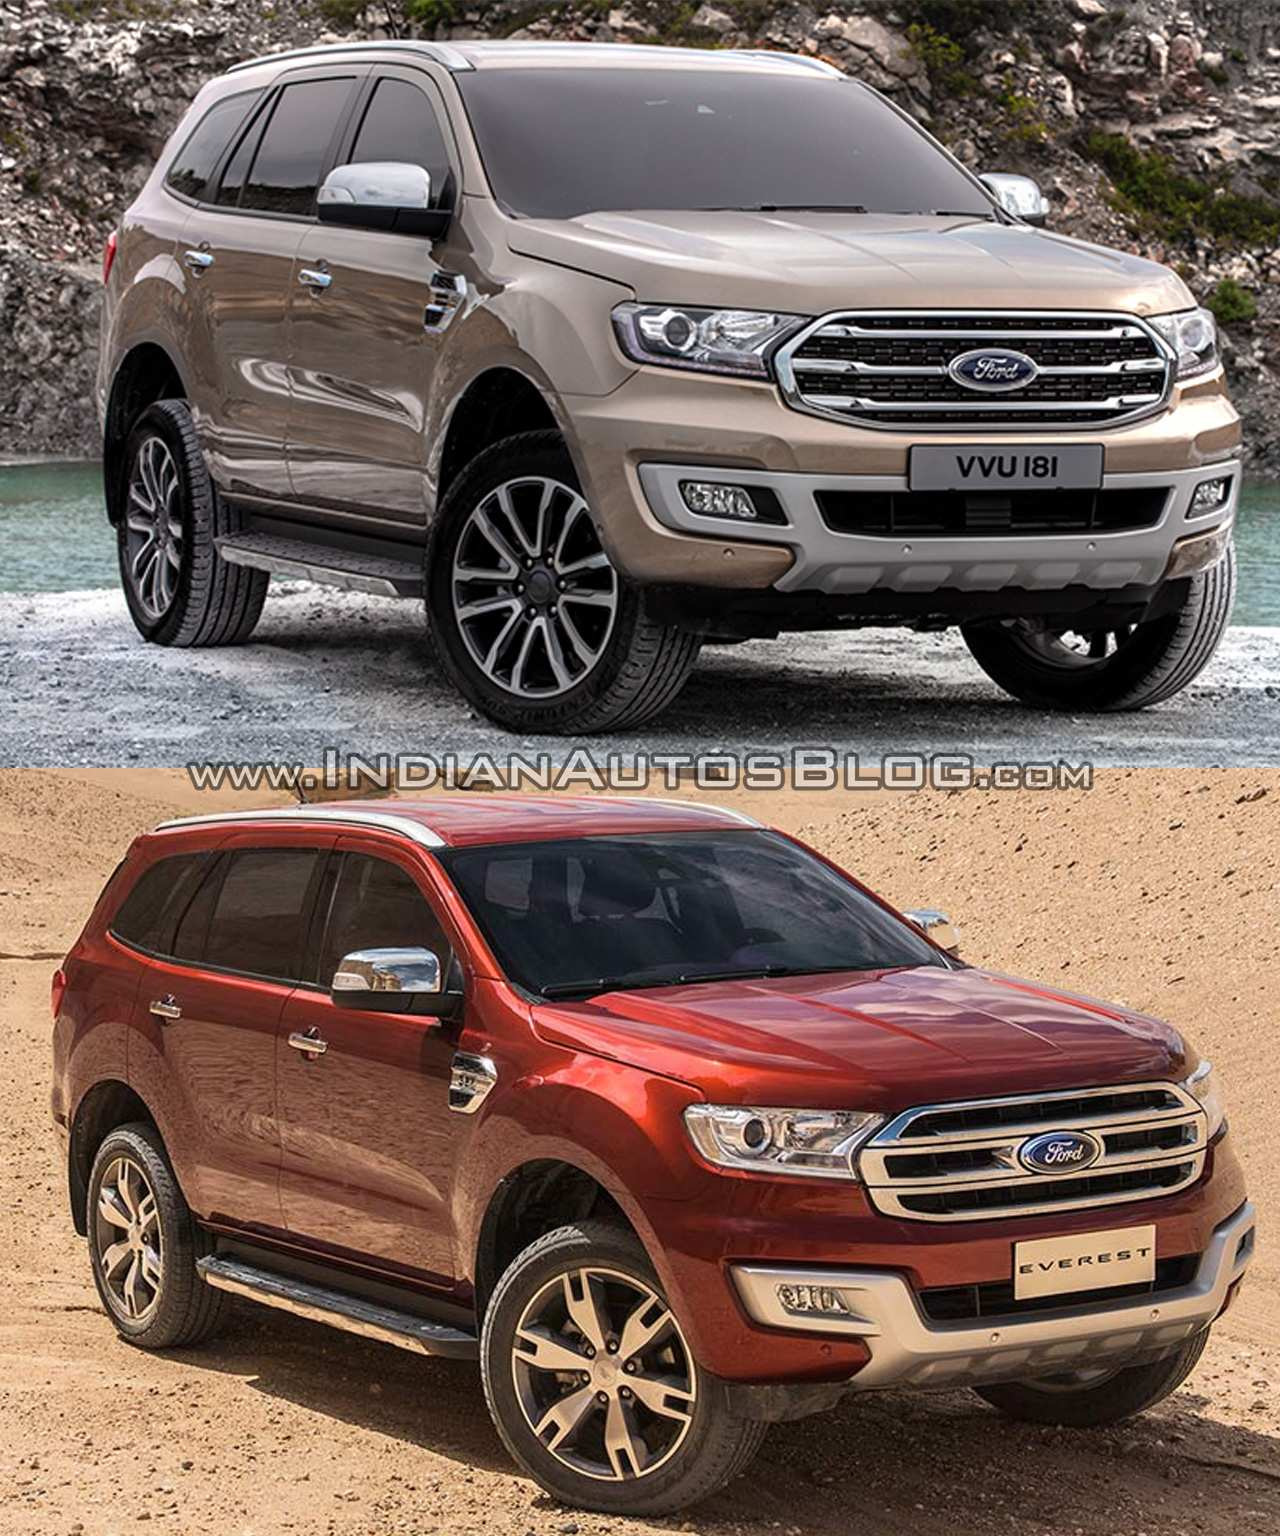 38 Great Best Ford Endeavour 2019 Performance And New Engine First Drive by Best Ford Endeavour 2019 Performance And New Engine